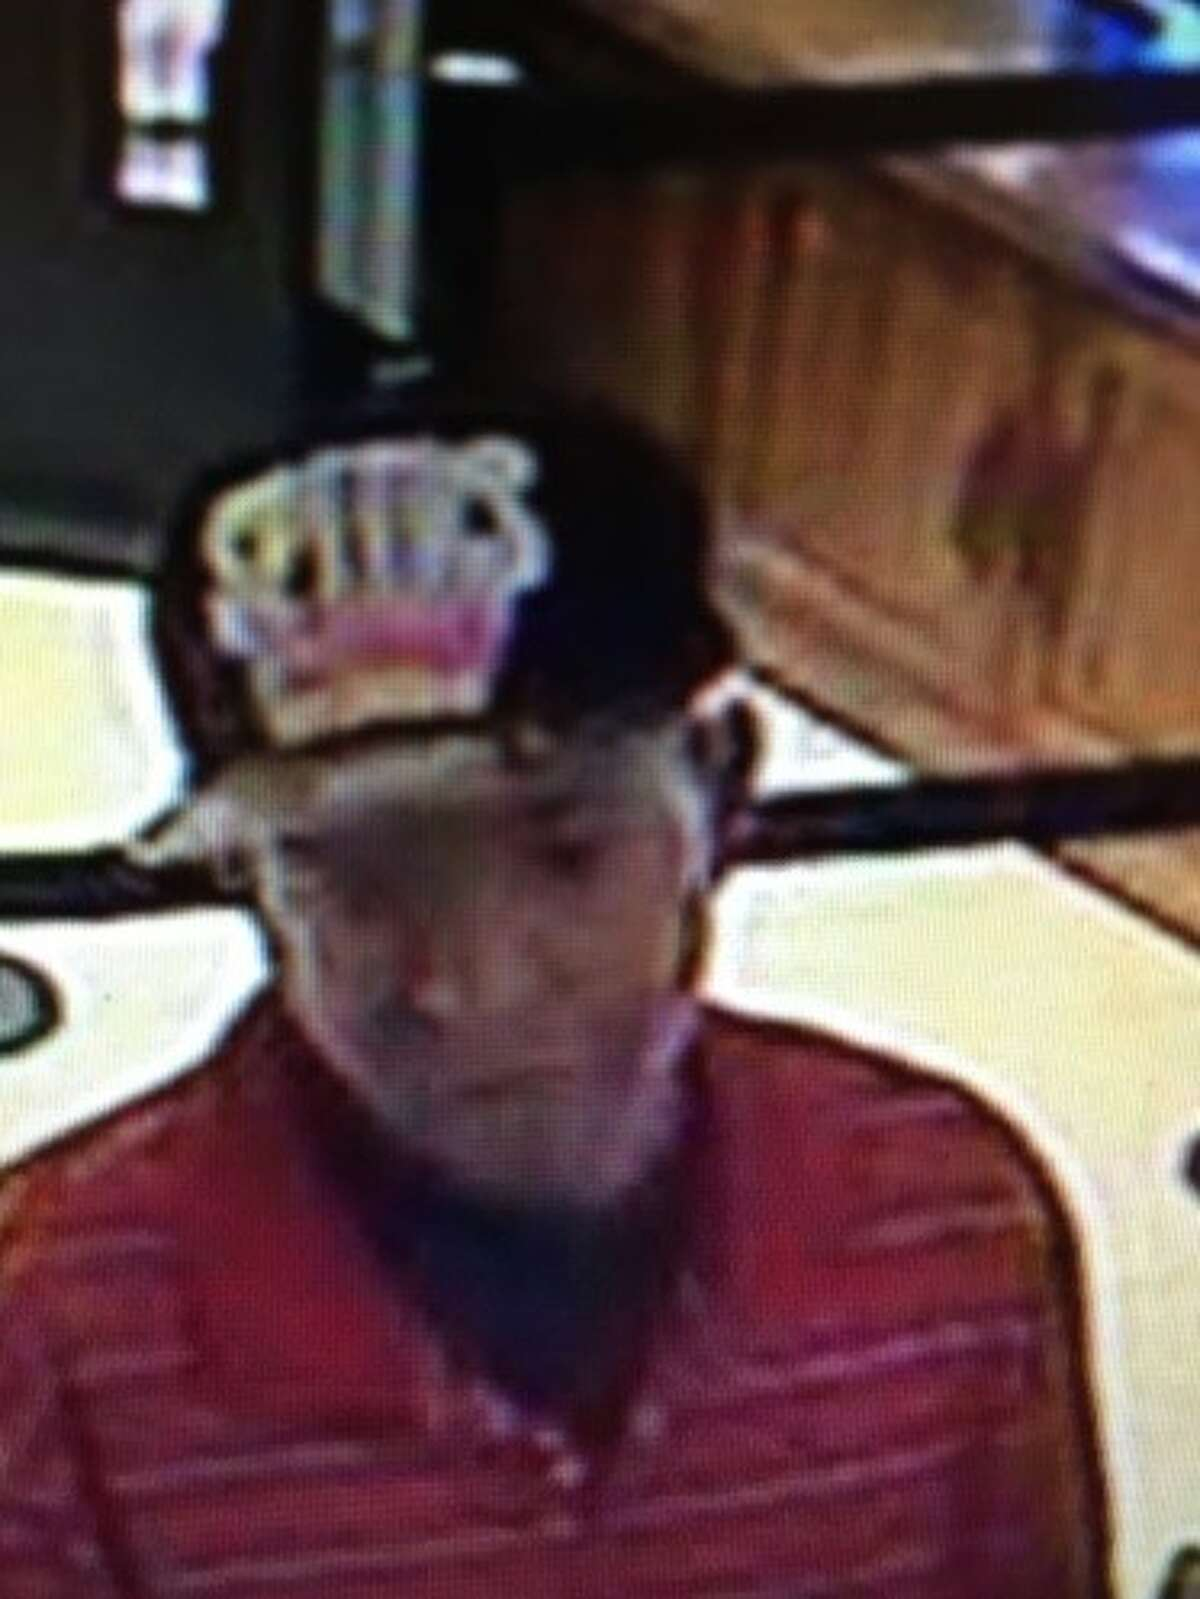 Jan. 18, 2017: A suspect robbed the BBVA Compass bank on the 200 block of South Zarzamora Street when he handed the clerk a note demanding money. He fled on a bicycle. READ THE STORY: Police responding to bank robbery nab two feeling scene of clothing store theft nearby